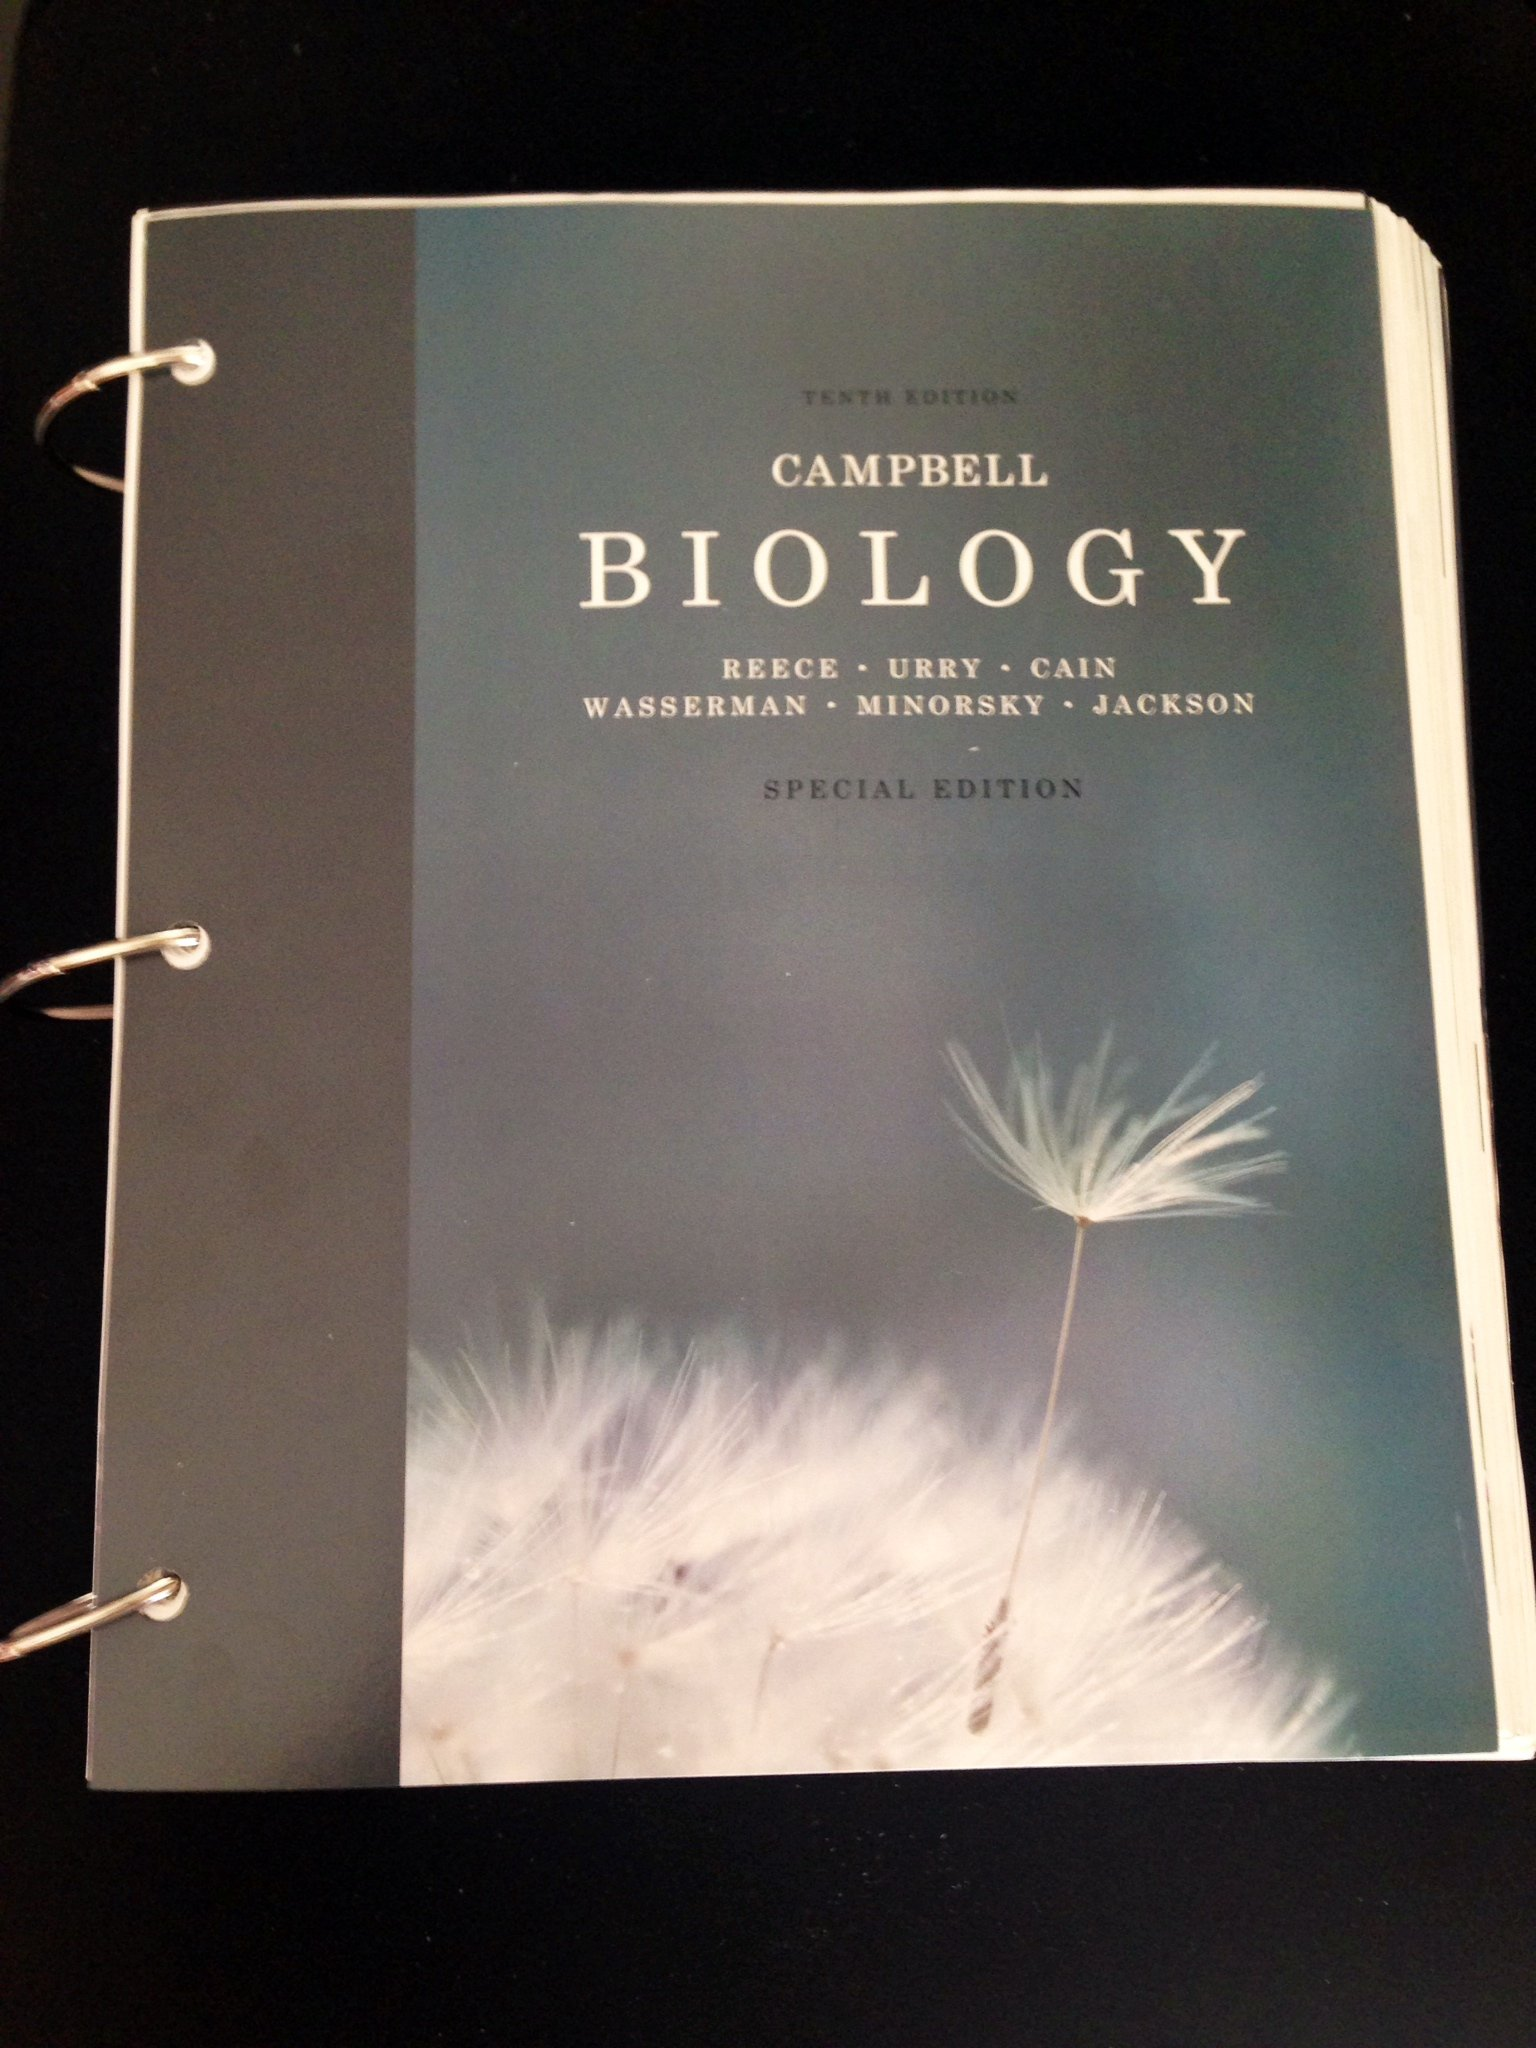 BIOLOGY 10TH EDITION CAMPBELL PDF DOWNLOAD